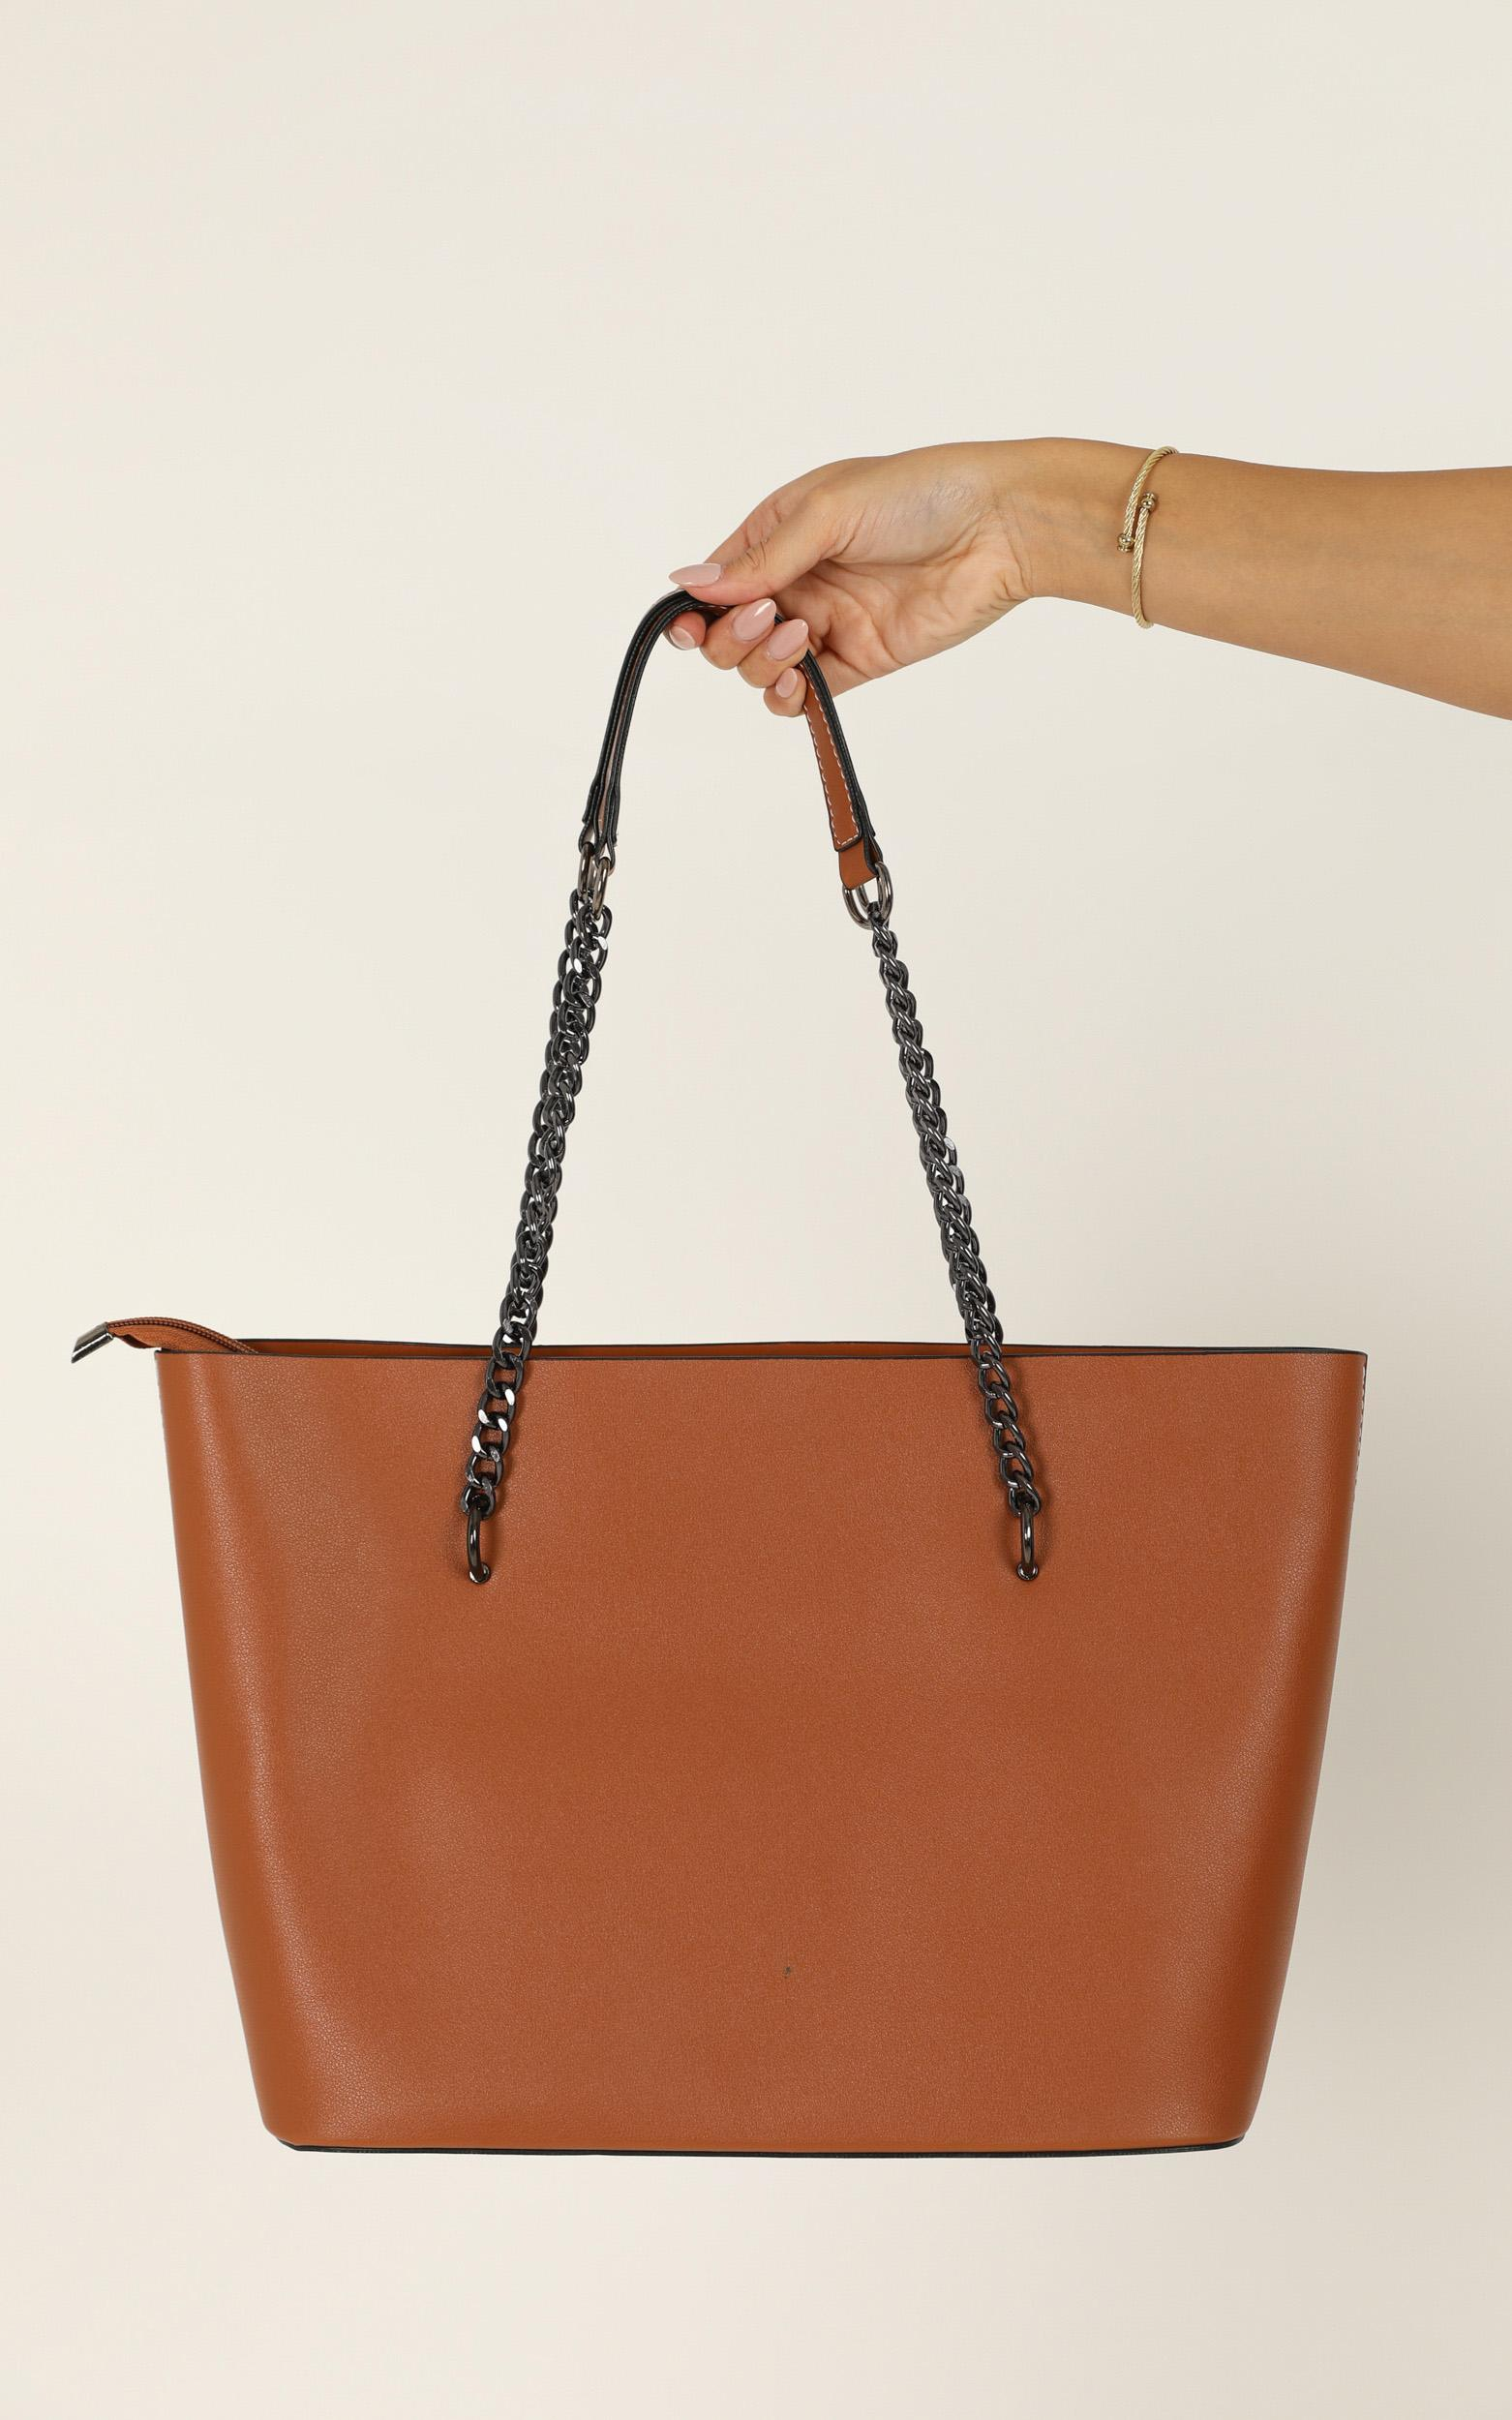 Give You Up Bag In Tan And Silver, Tan, hi-res image number null